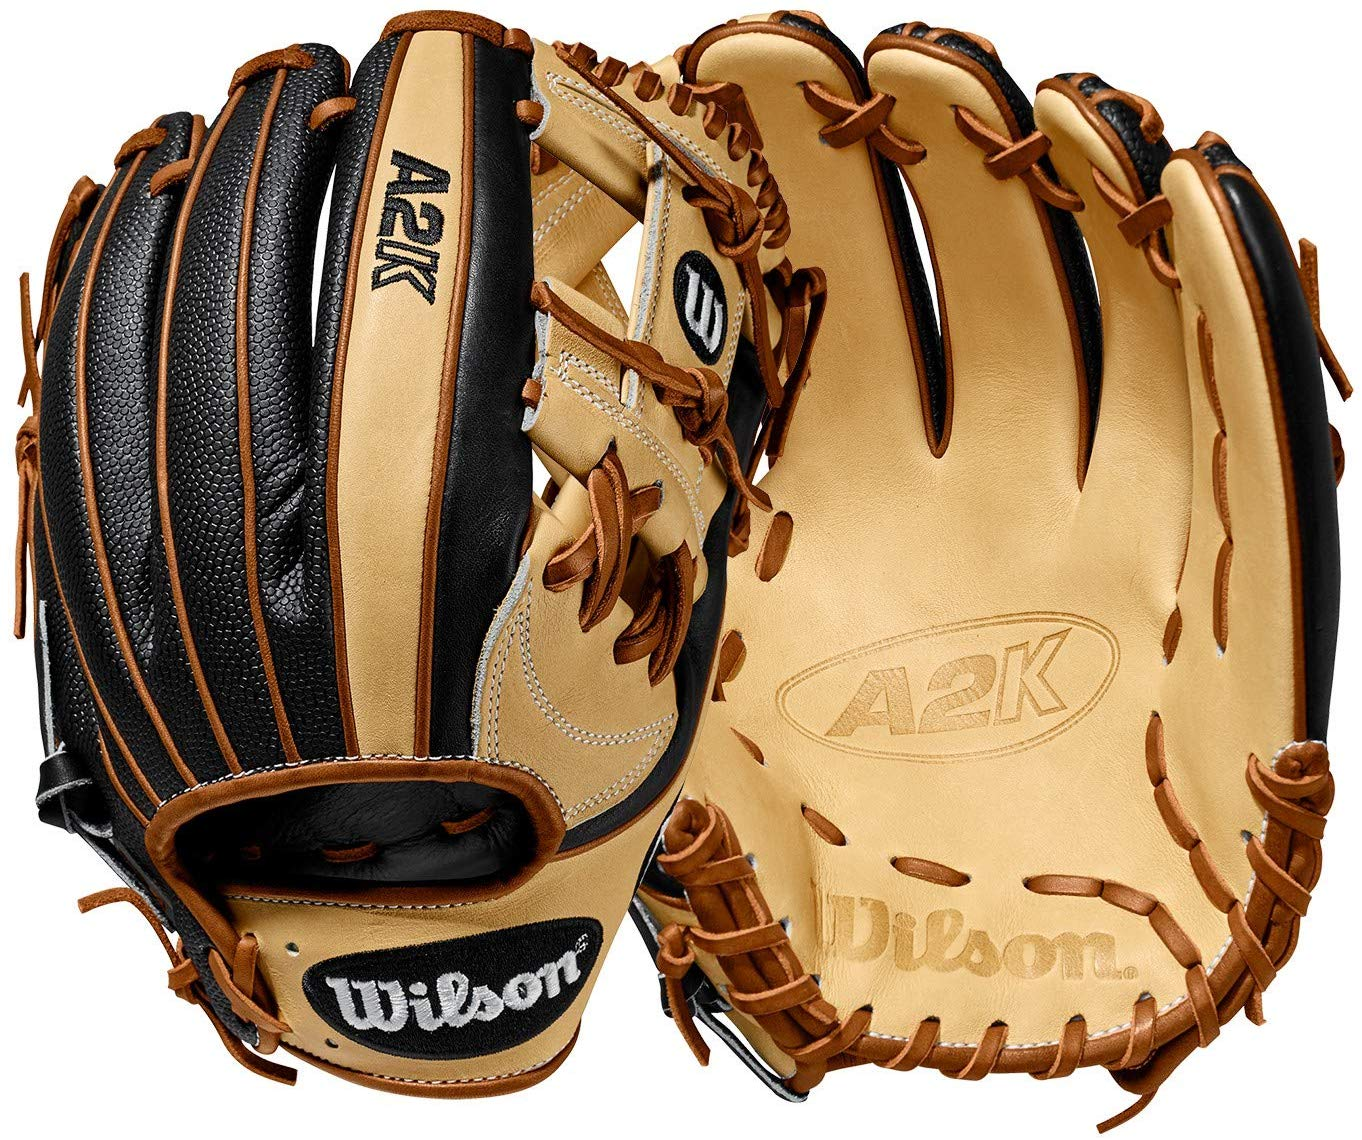 A2K Baseball Glove Series